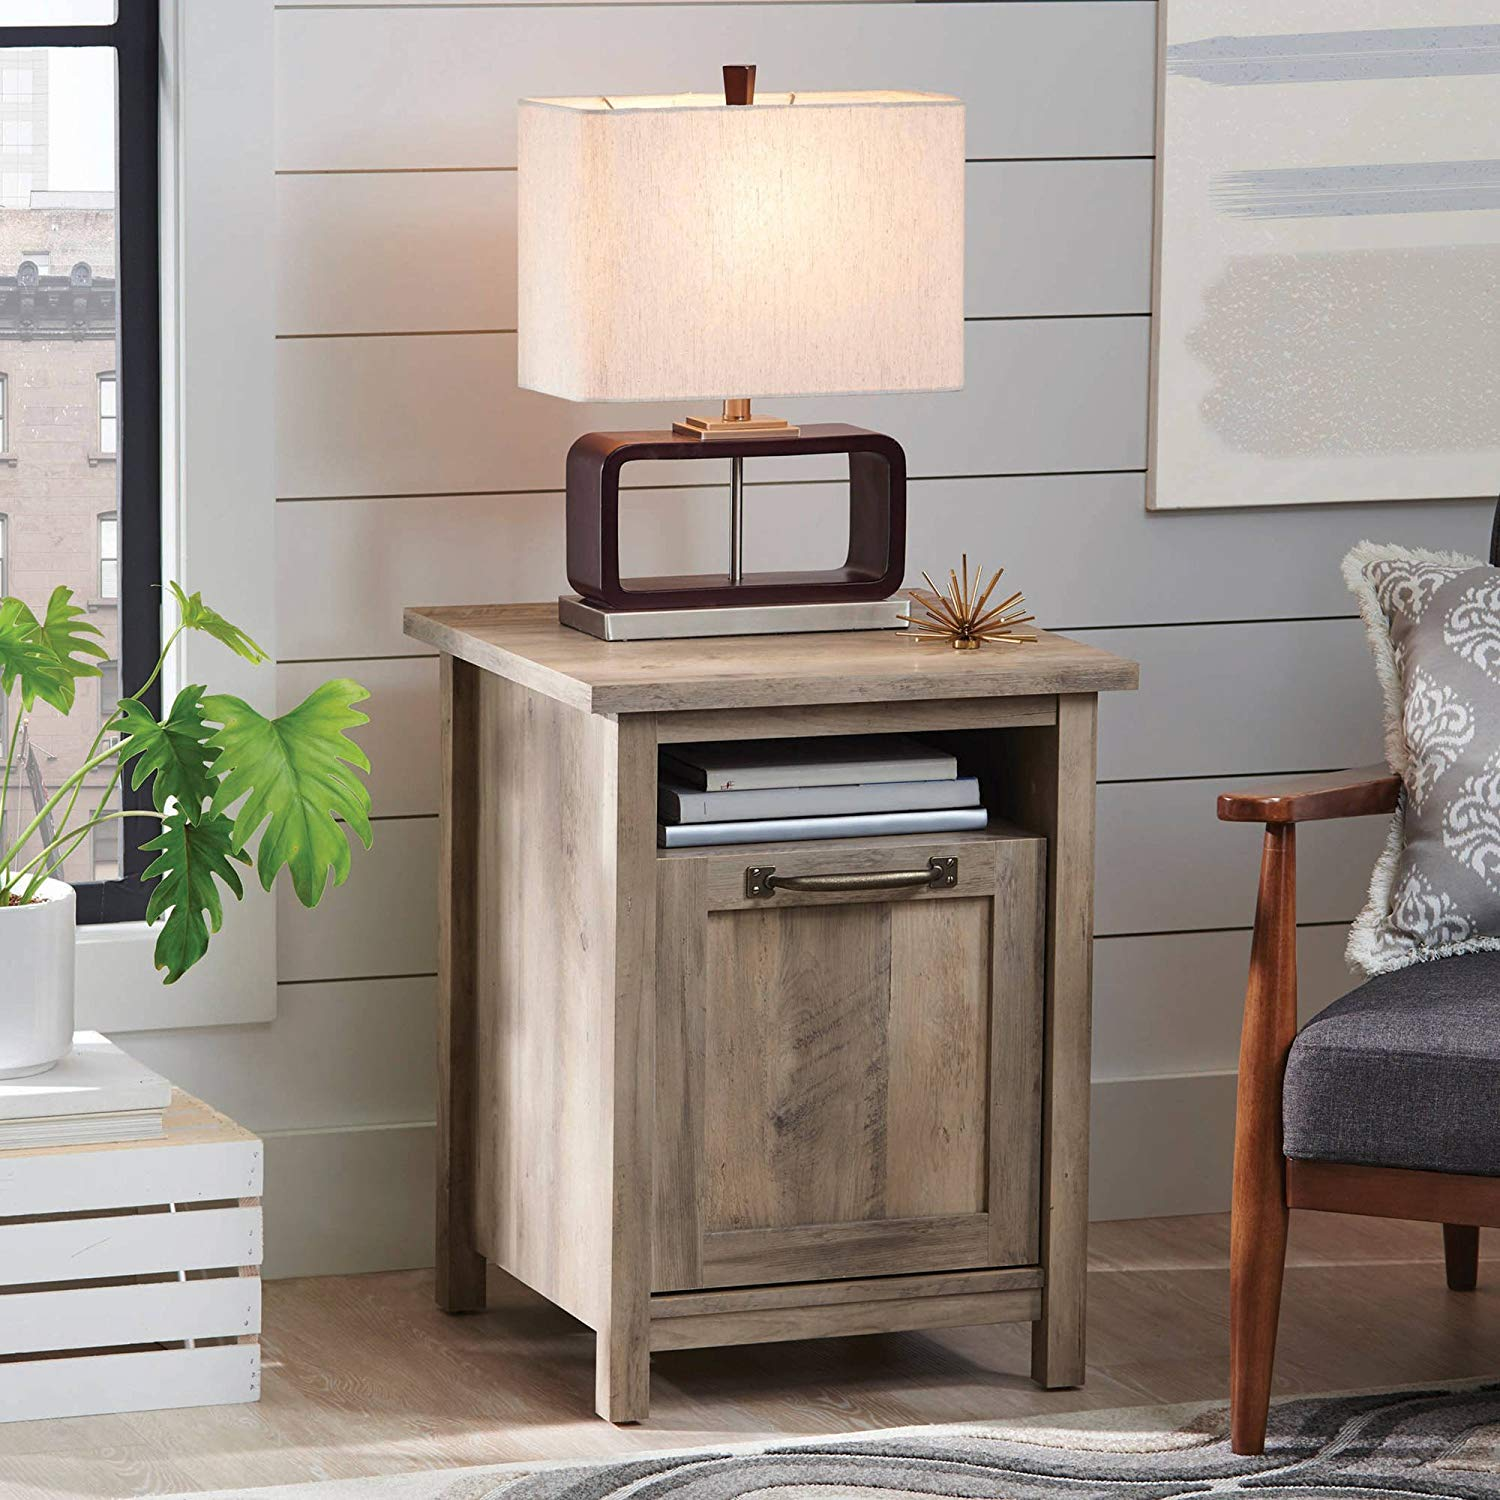 better homes and gardens modern farmhouse side table accent rustic gray nightstands finish health personal care wireless bedside lamp plus tablet brass nightstand prefinished